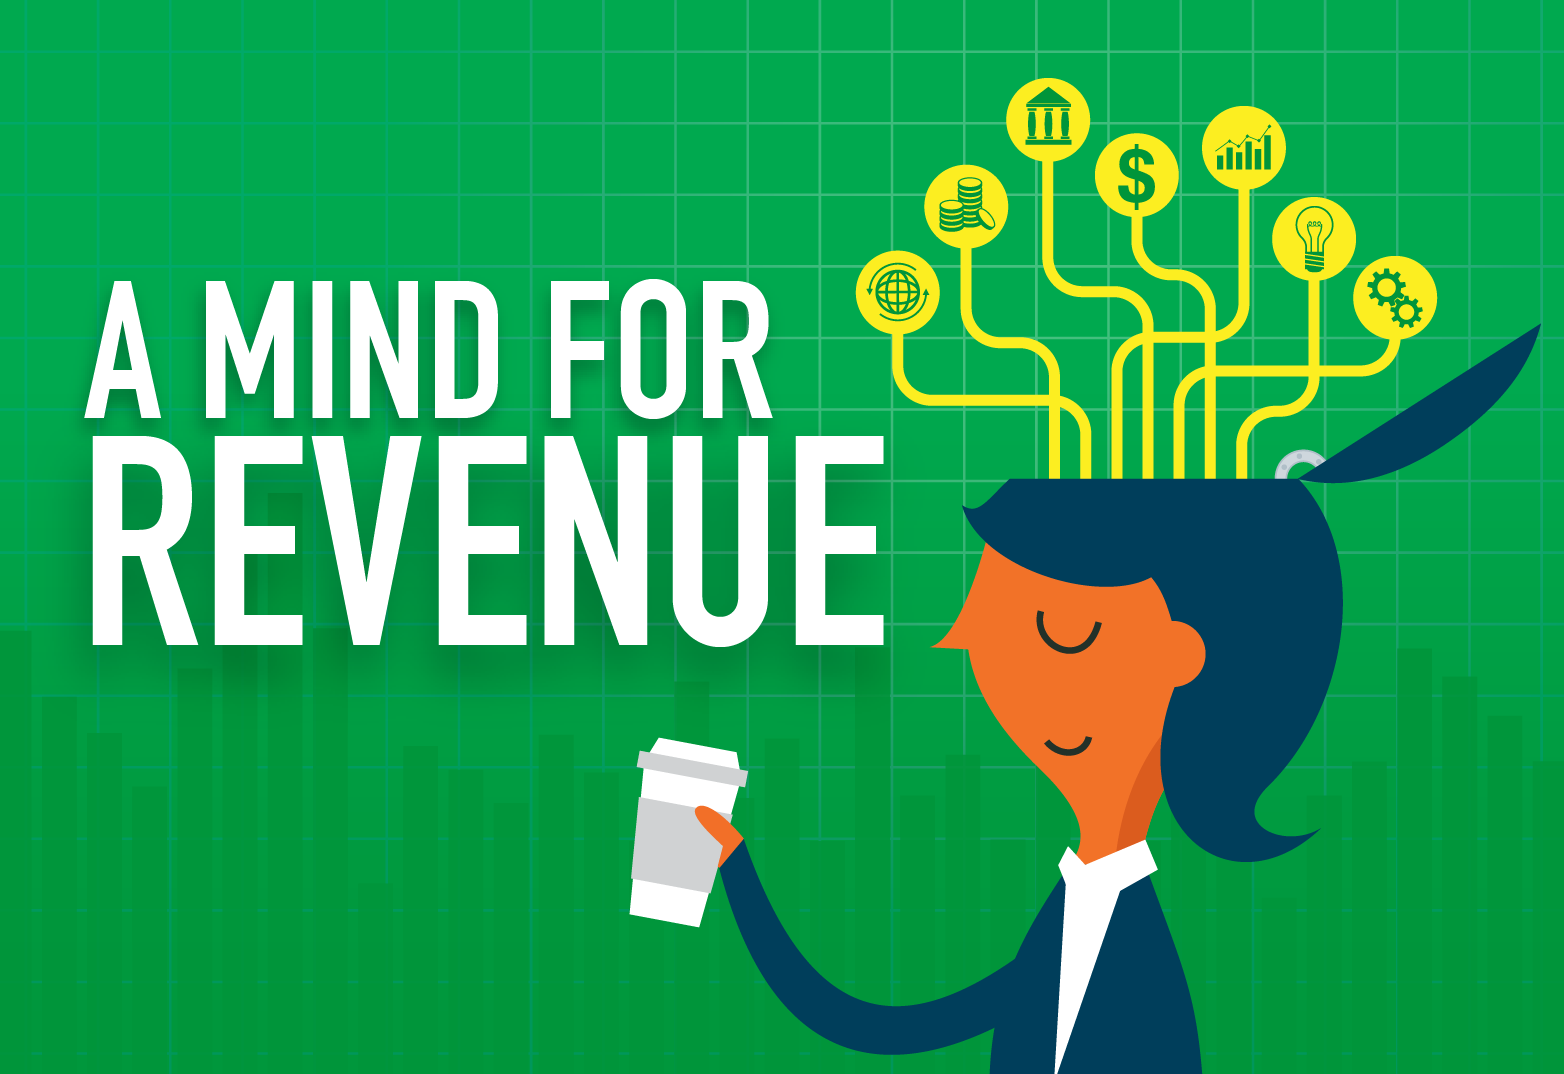 A mind for revenue